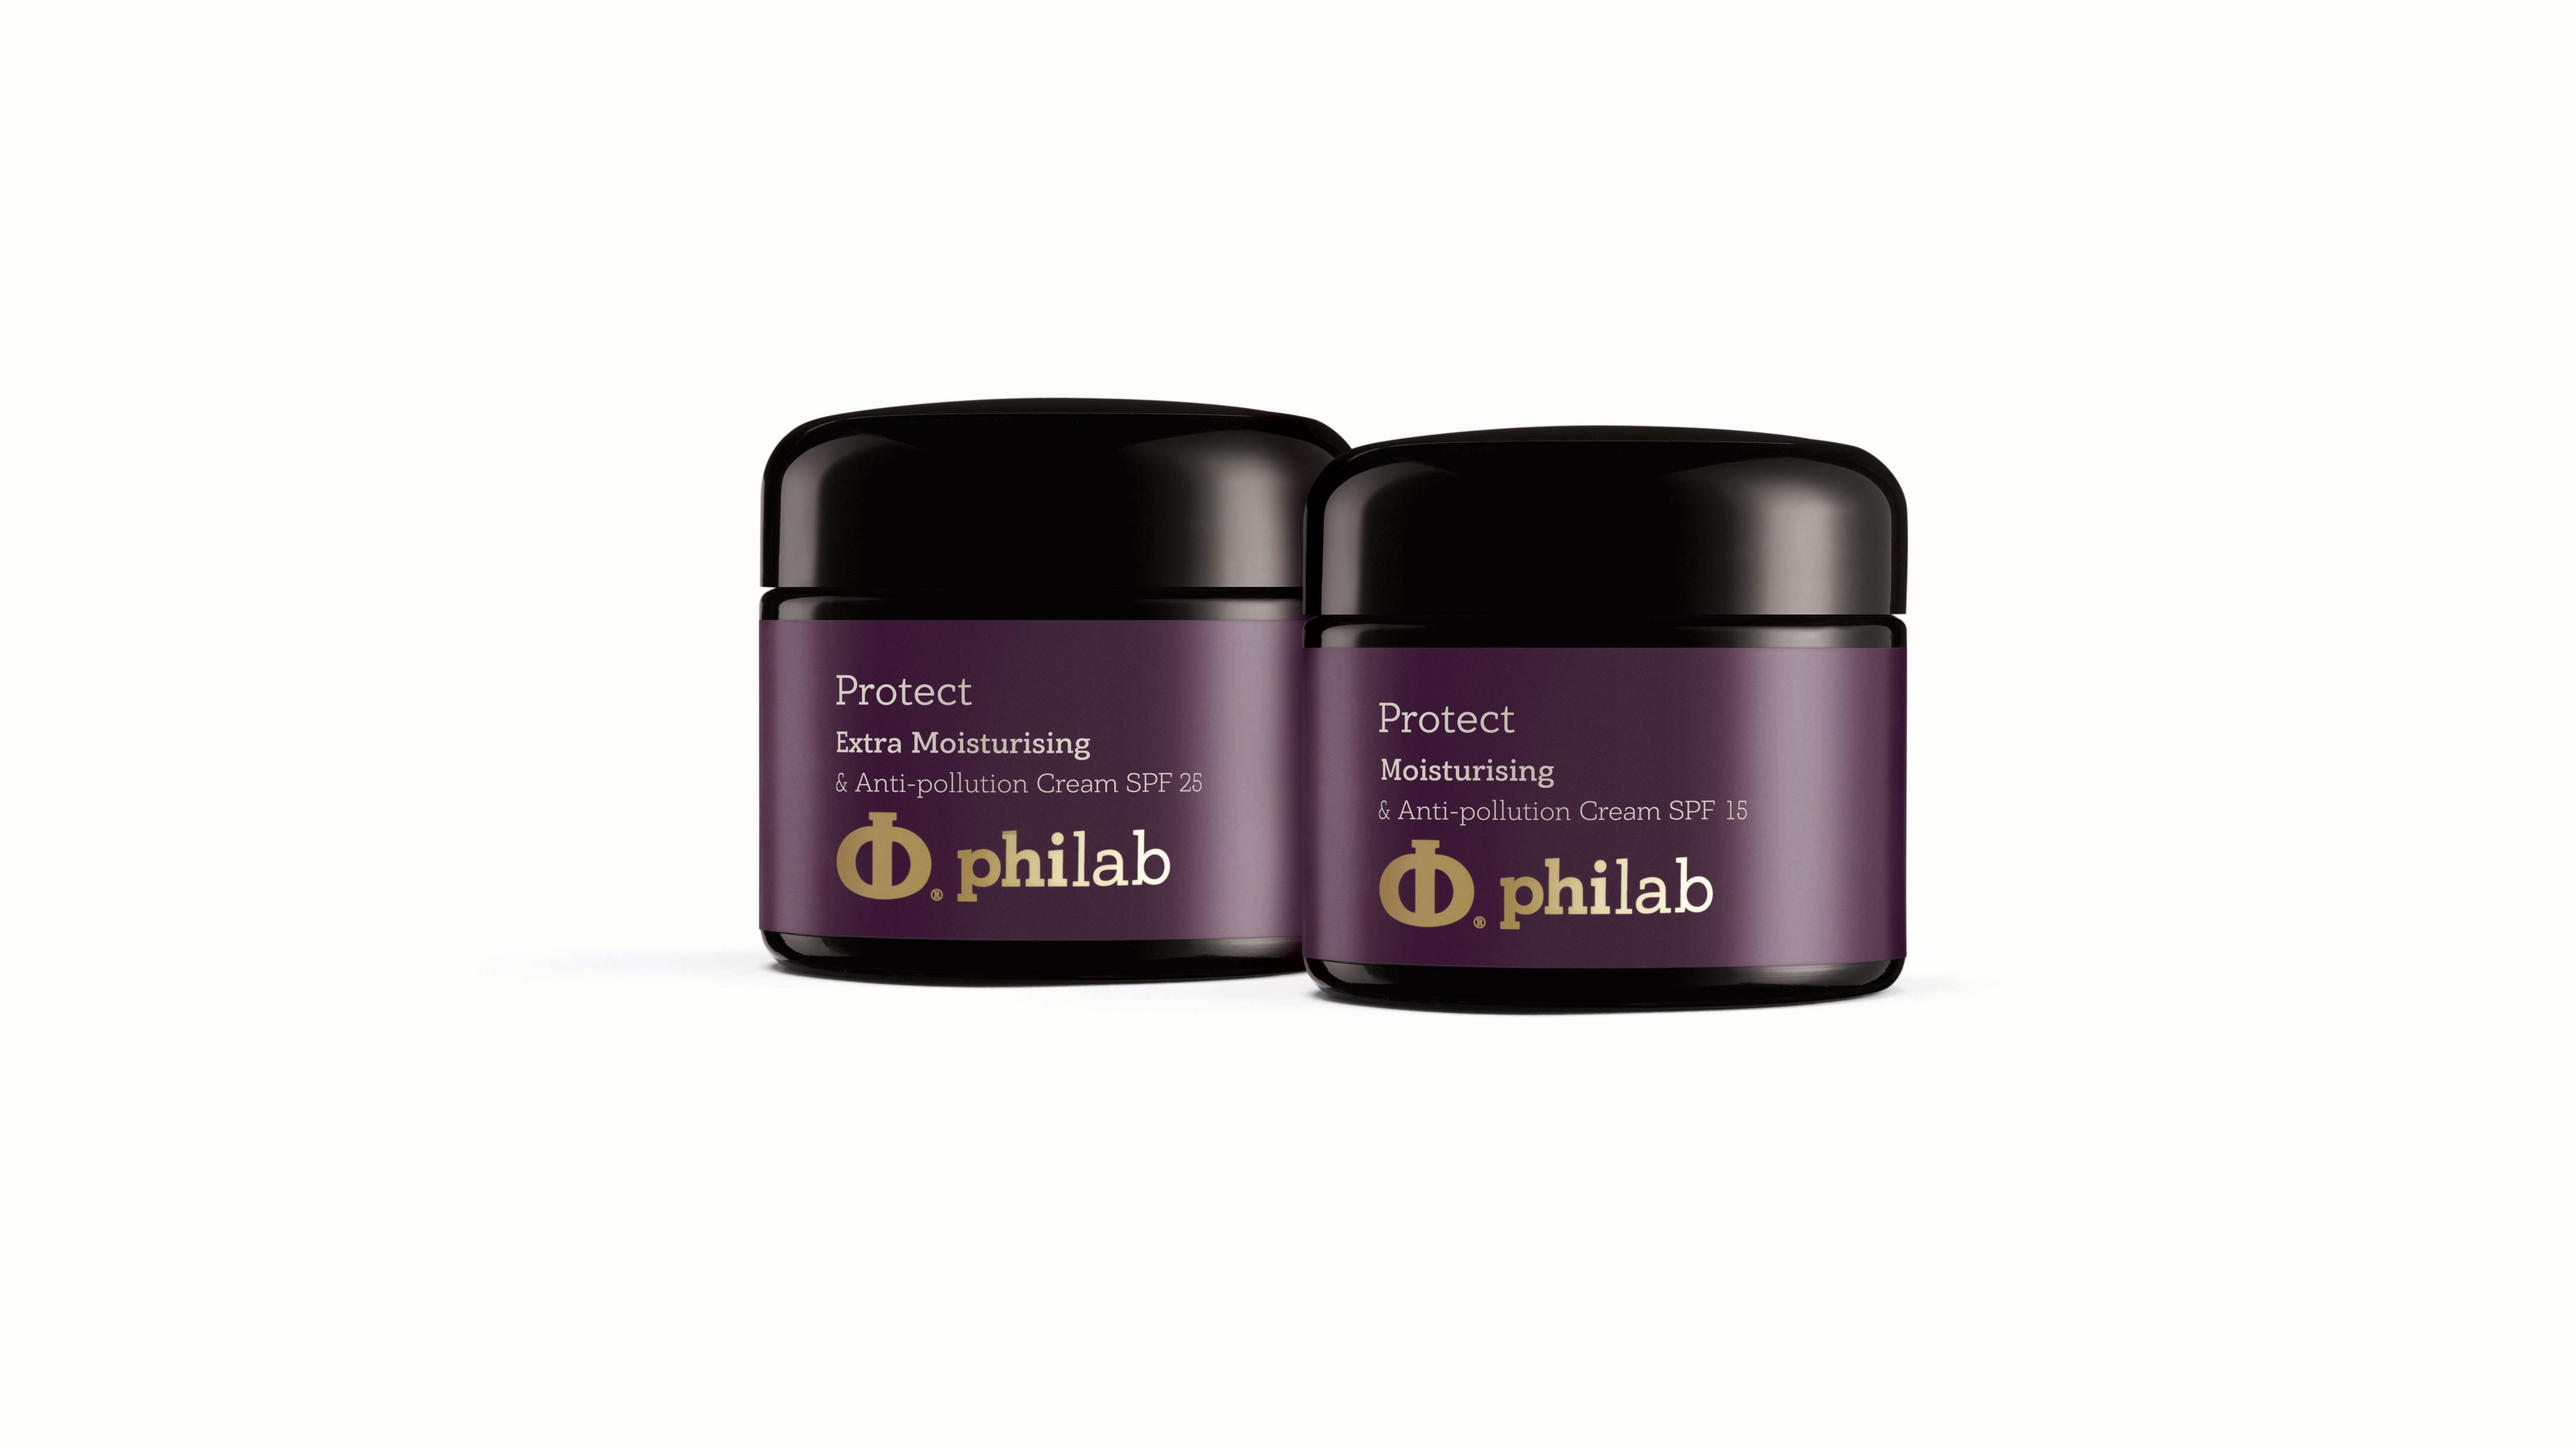 Philab cosmetics